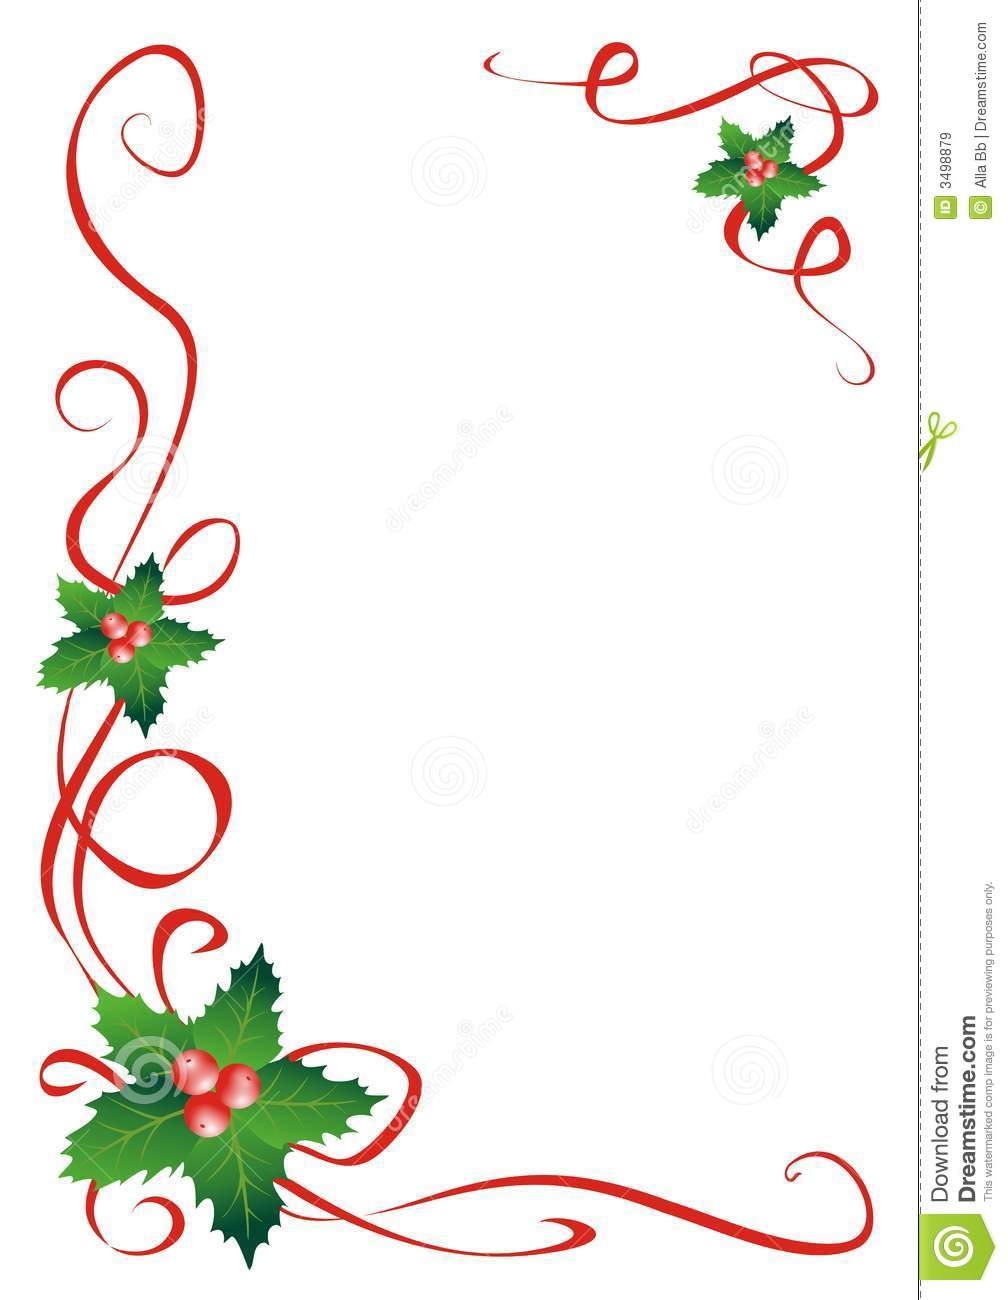 Decoration clipart holly  Holly Lines Christmas Clipart